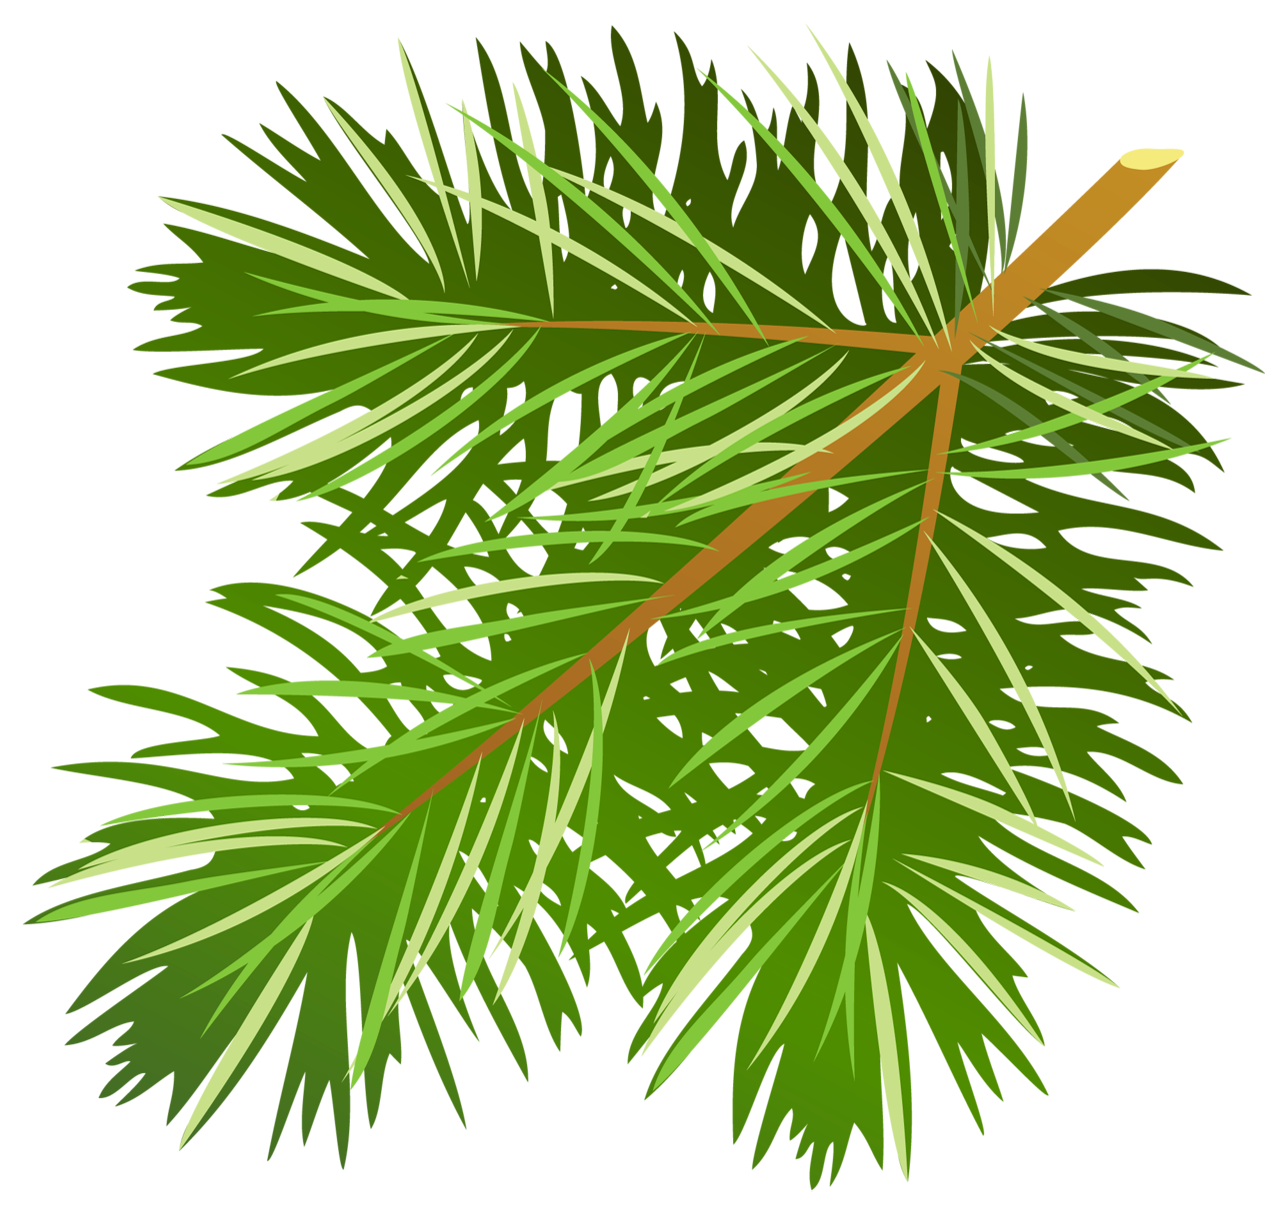 Pine boughs png free. Transparent branch clipart gallery